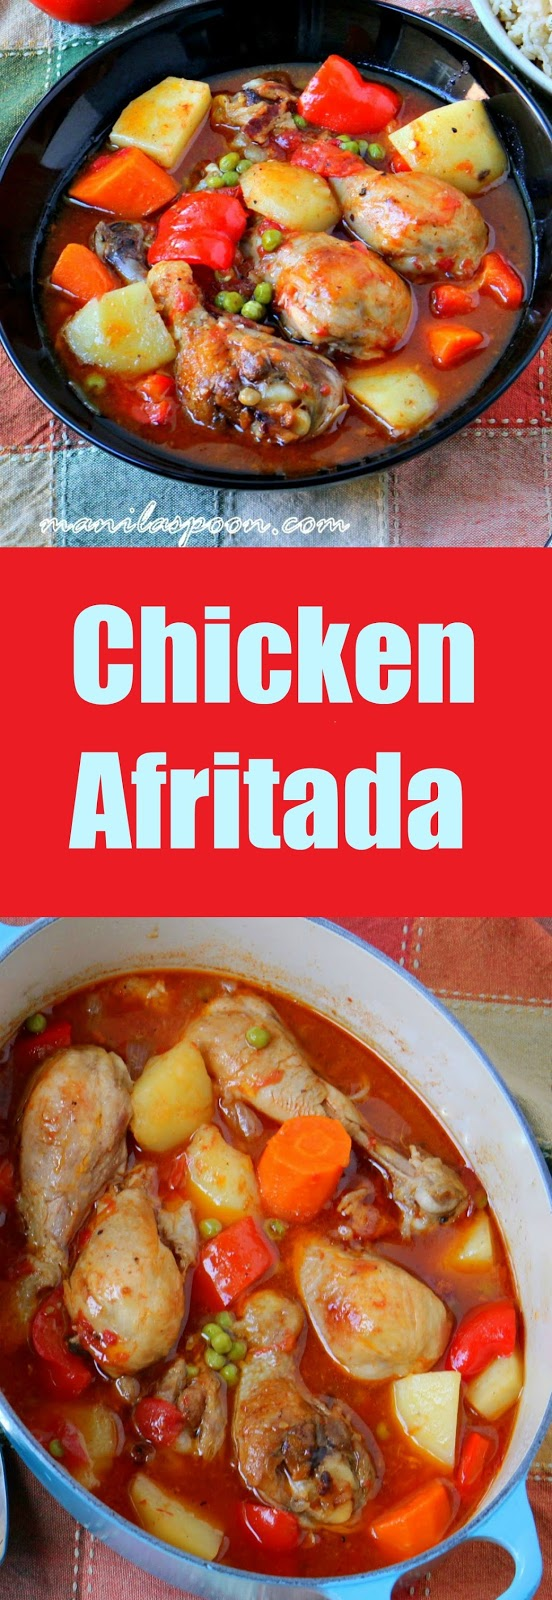 Tender and delicious chicken slowly simmered in seasoned tomato sauce - CHICKEN AFRITADA! Enjoy with some rice and drizzle the sauce all over! | manilaspoon.com